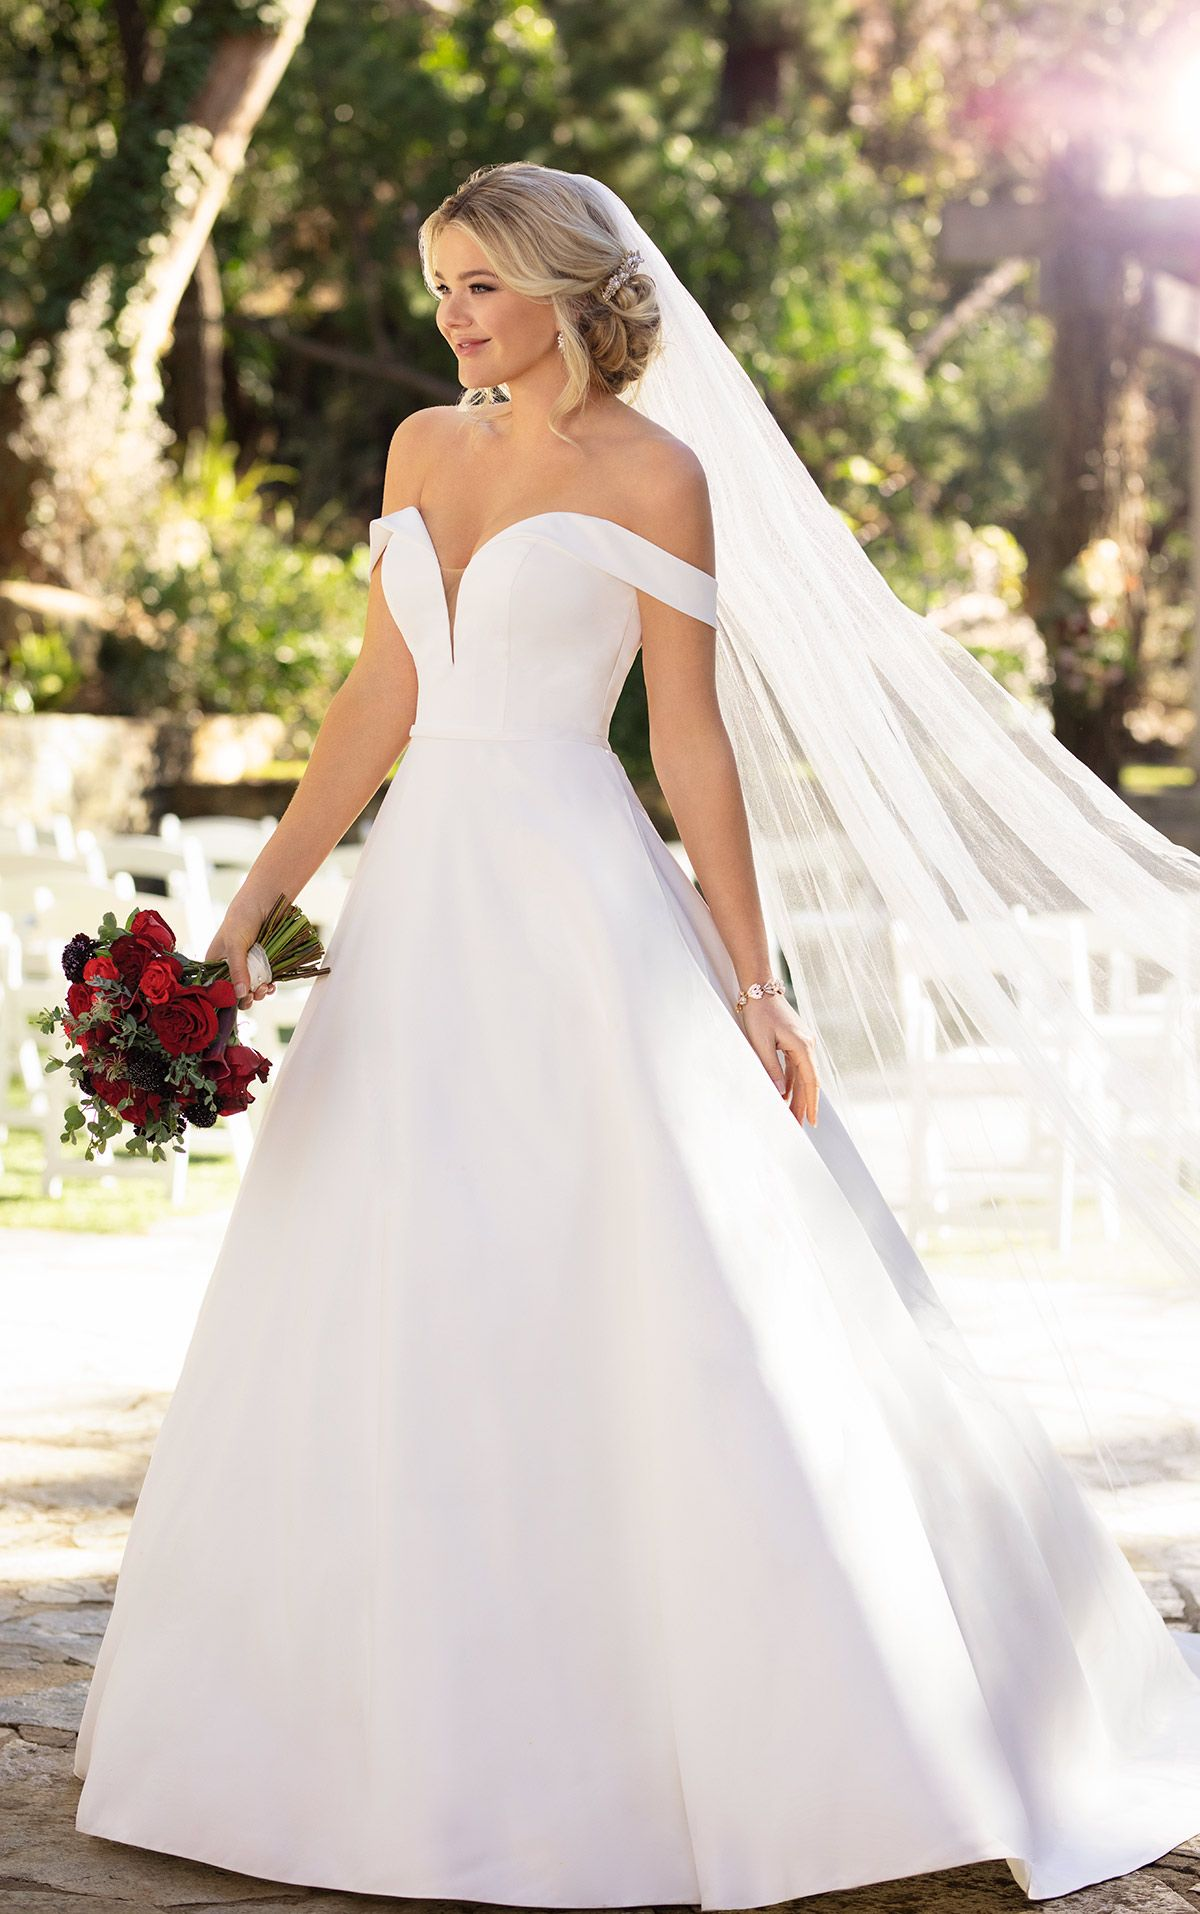 Classic Satin Ballgown with Pockets and OfftheShoulder